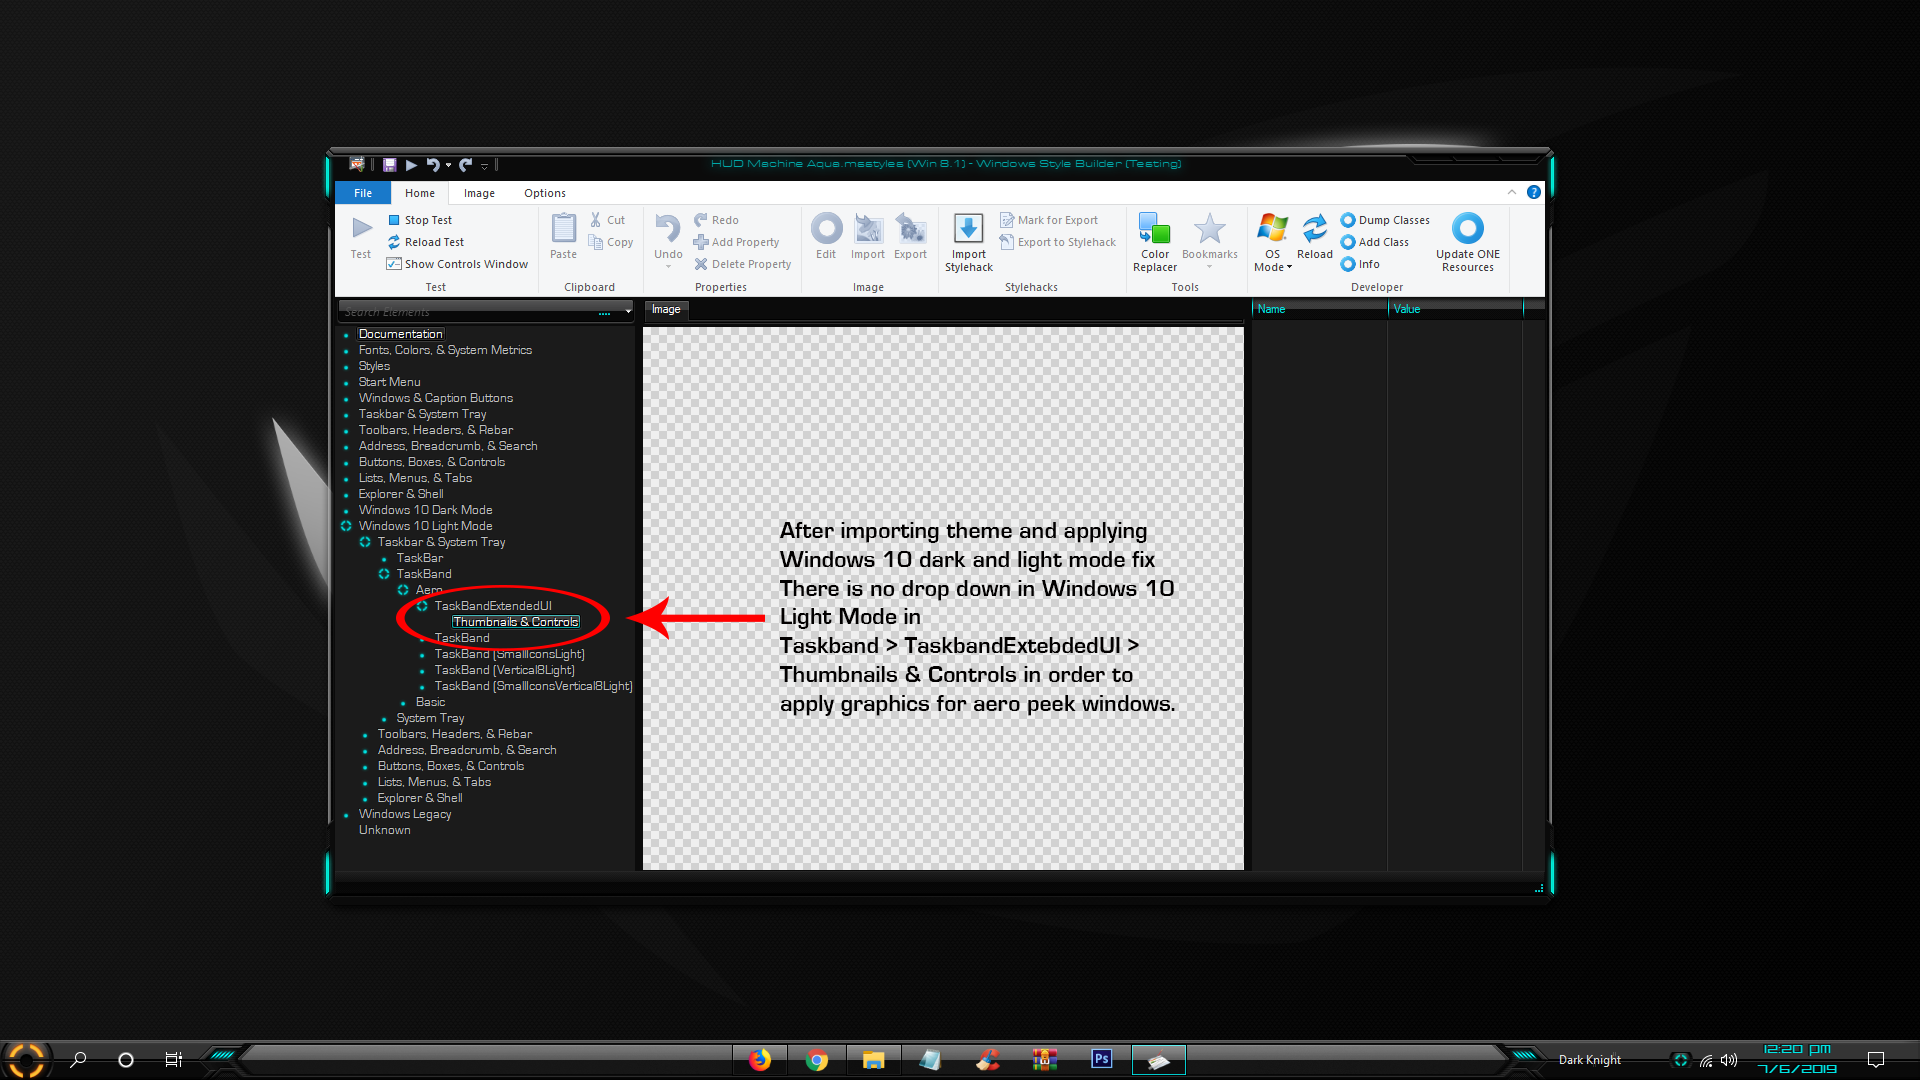 Windows 10 19H1 1903 Updated ClassMaps and Import Scripts